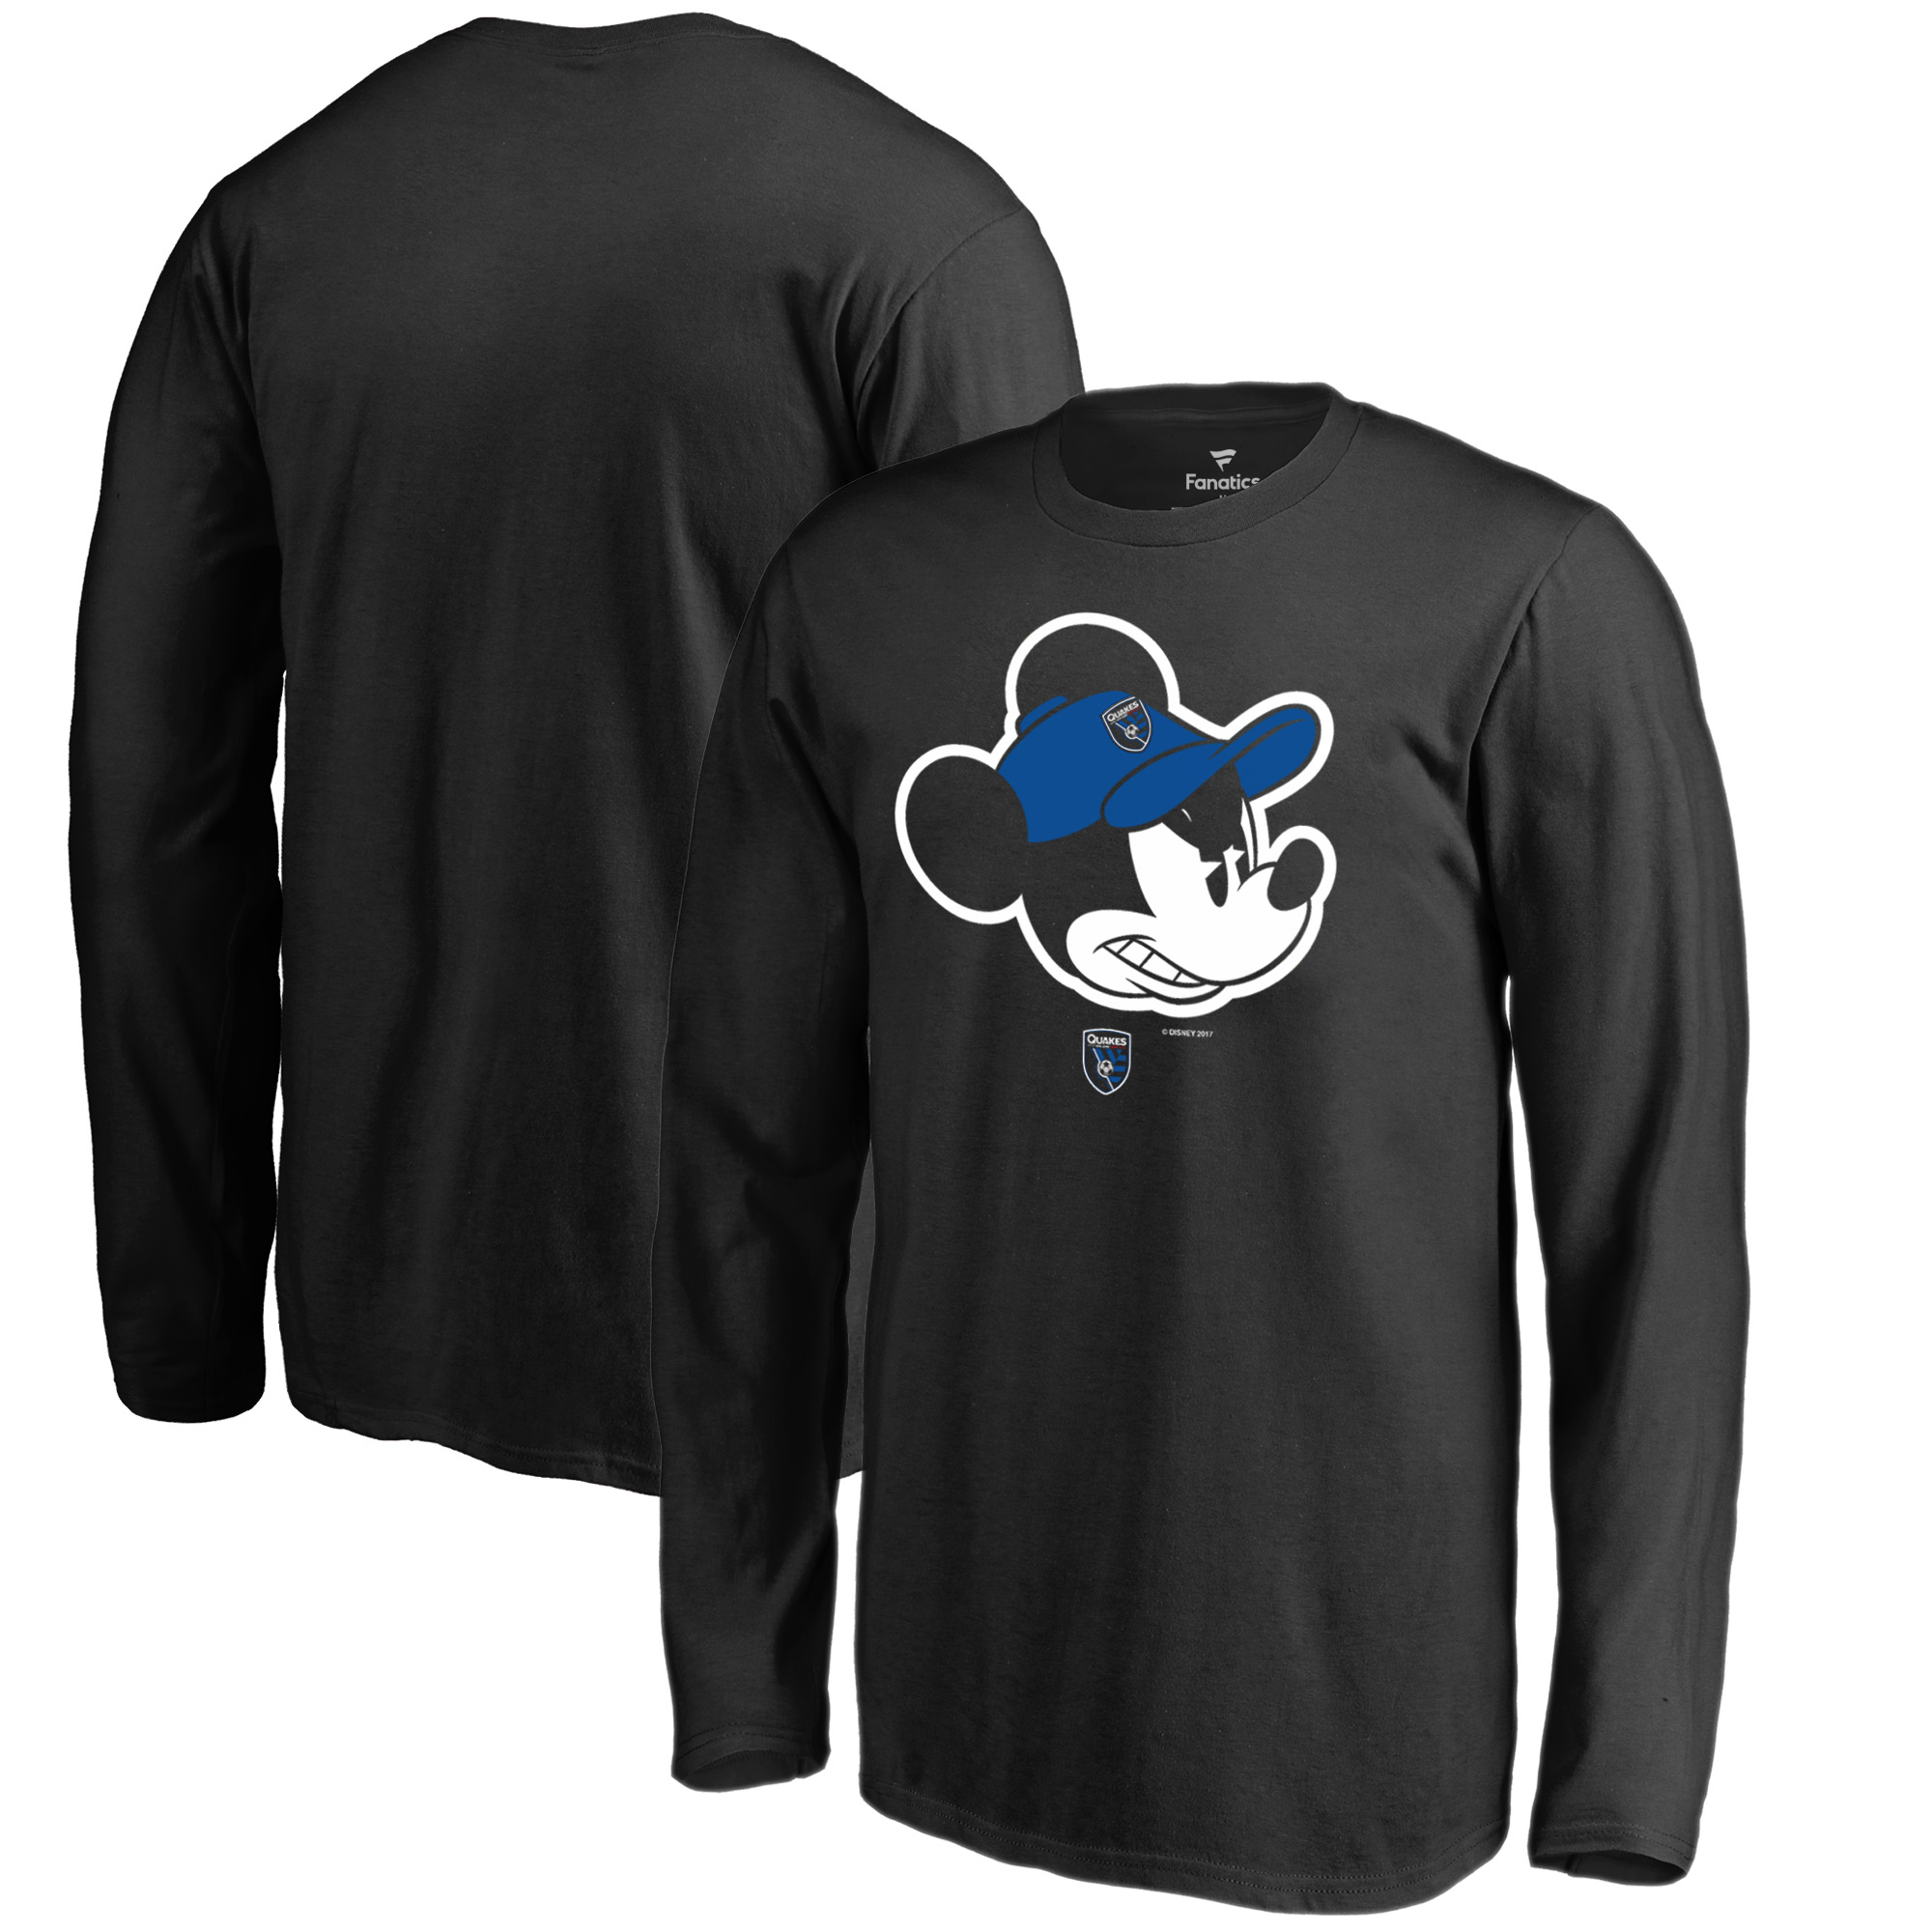 San Jose Earthquakes Fanatics Branded Youth Disney Game Face Long Sleeve T-Shirt - Black